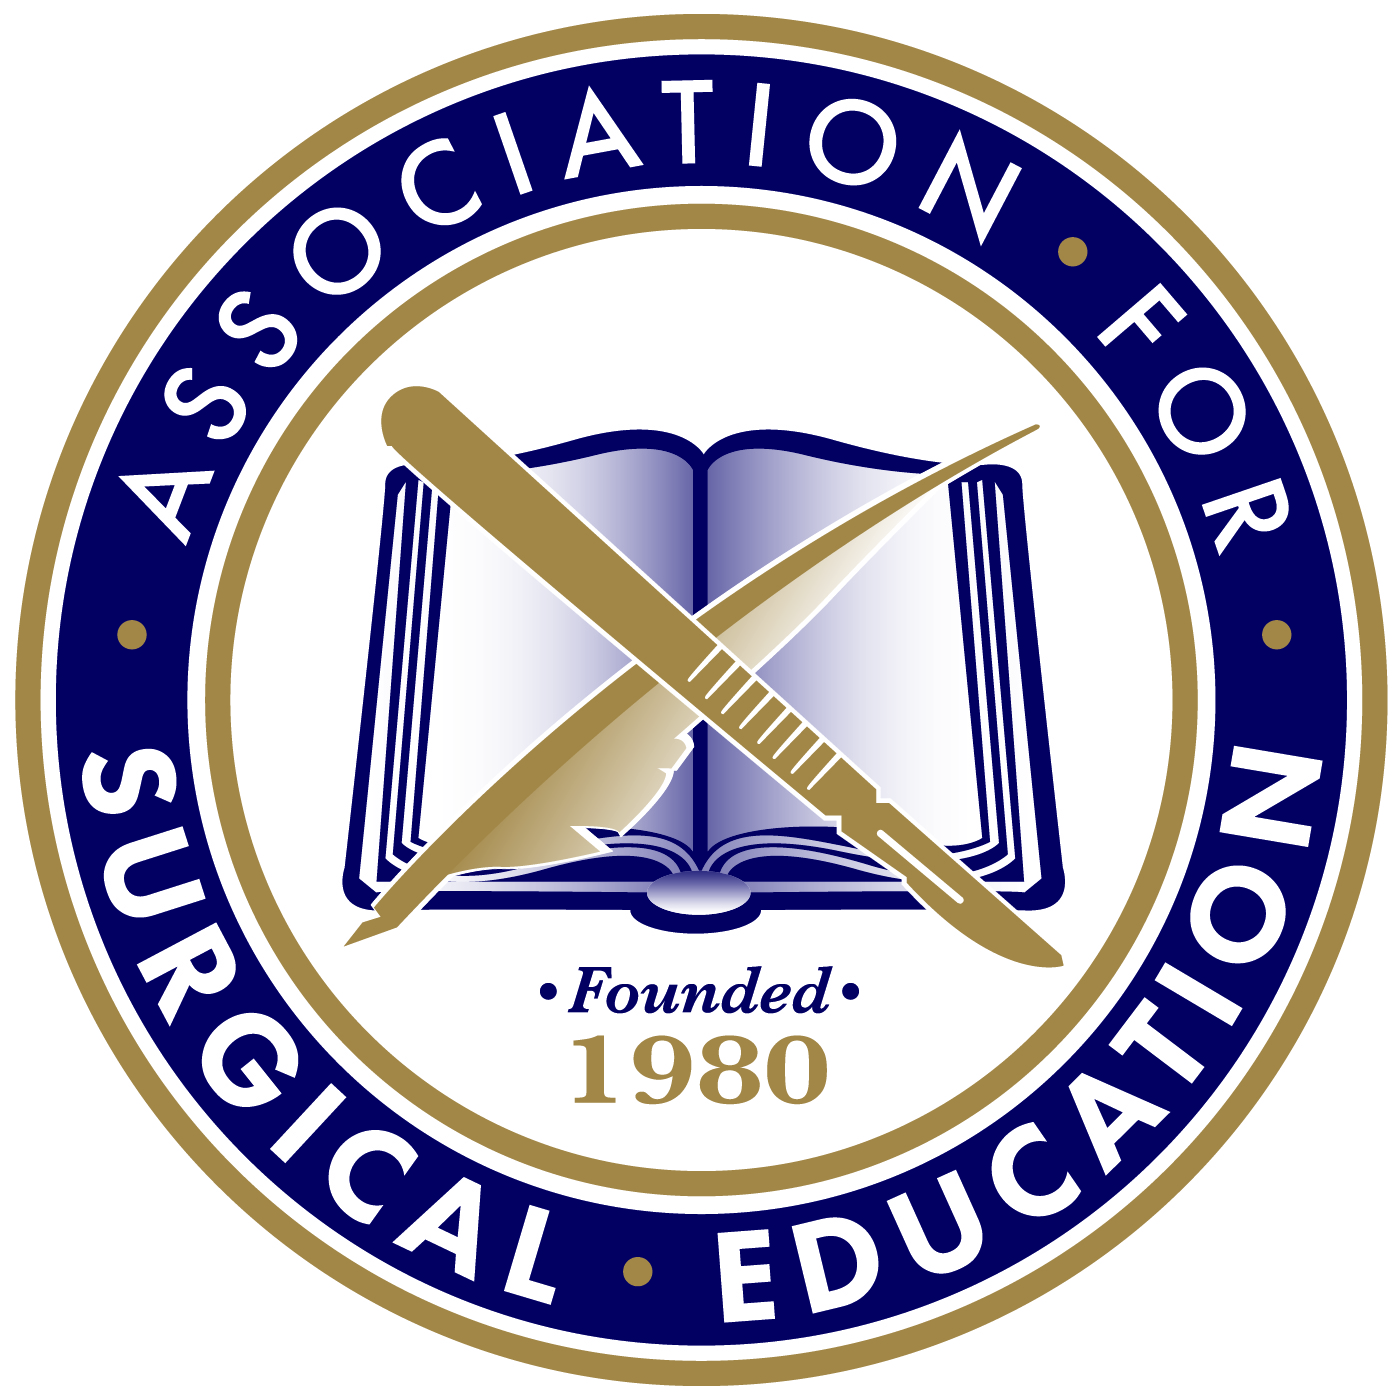 The Surgical Education Podcast